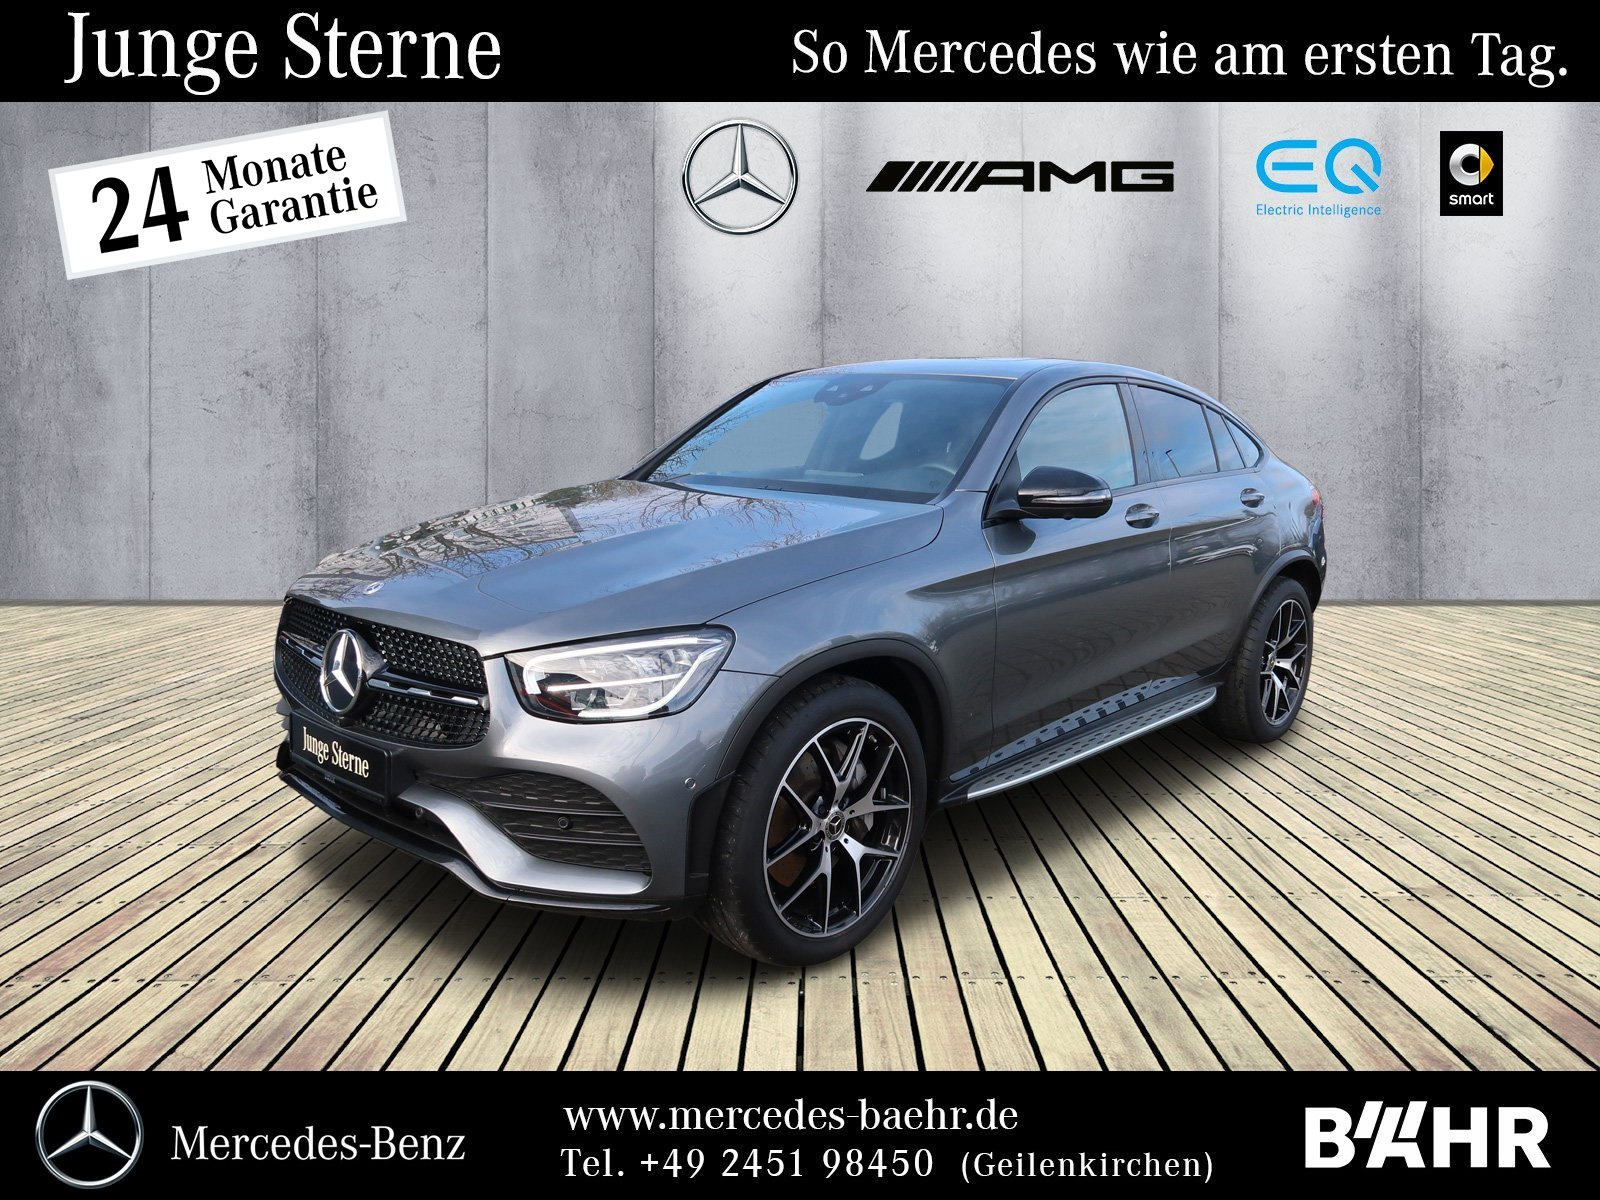 Mercedes-Benz GLC 400 d 4M Coupé AMG+Night/MBUX/LED/360°/SHD, Jahr 2019, Diesel